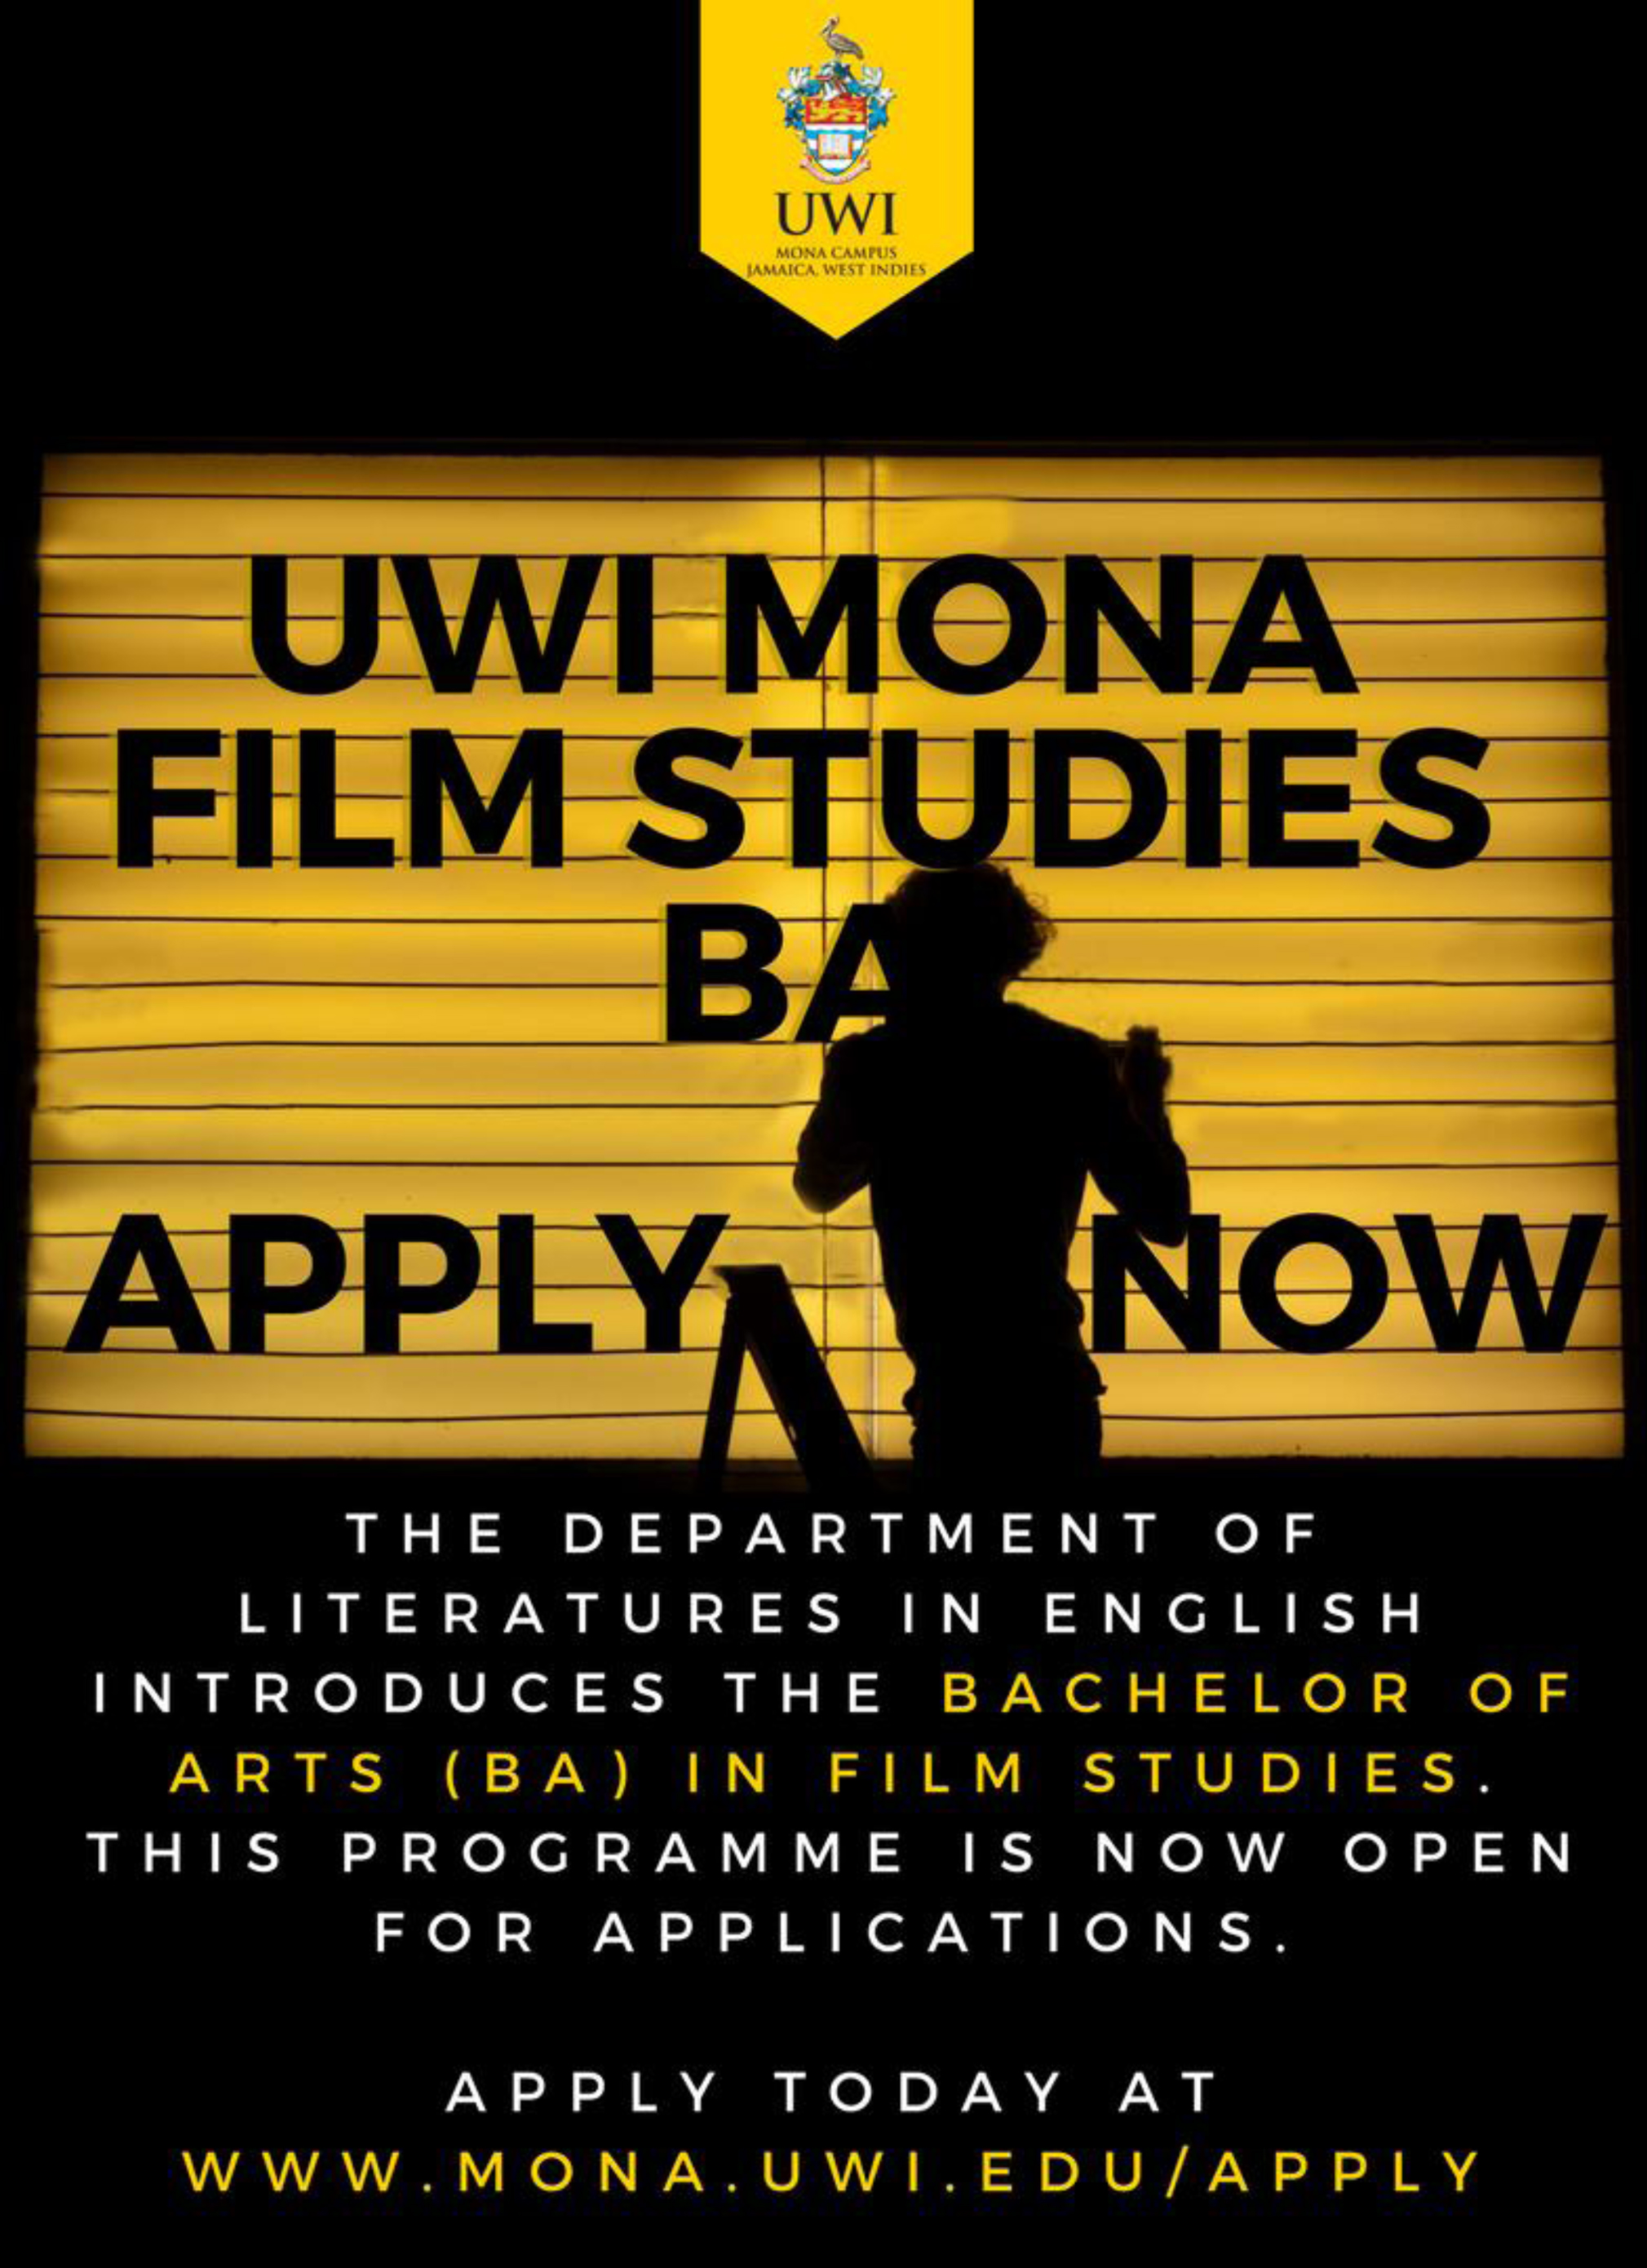 UWI Mona Film Studies